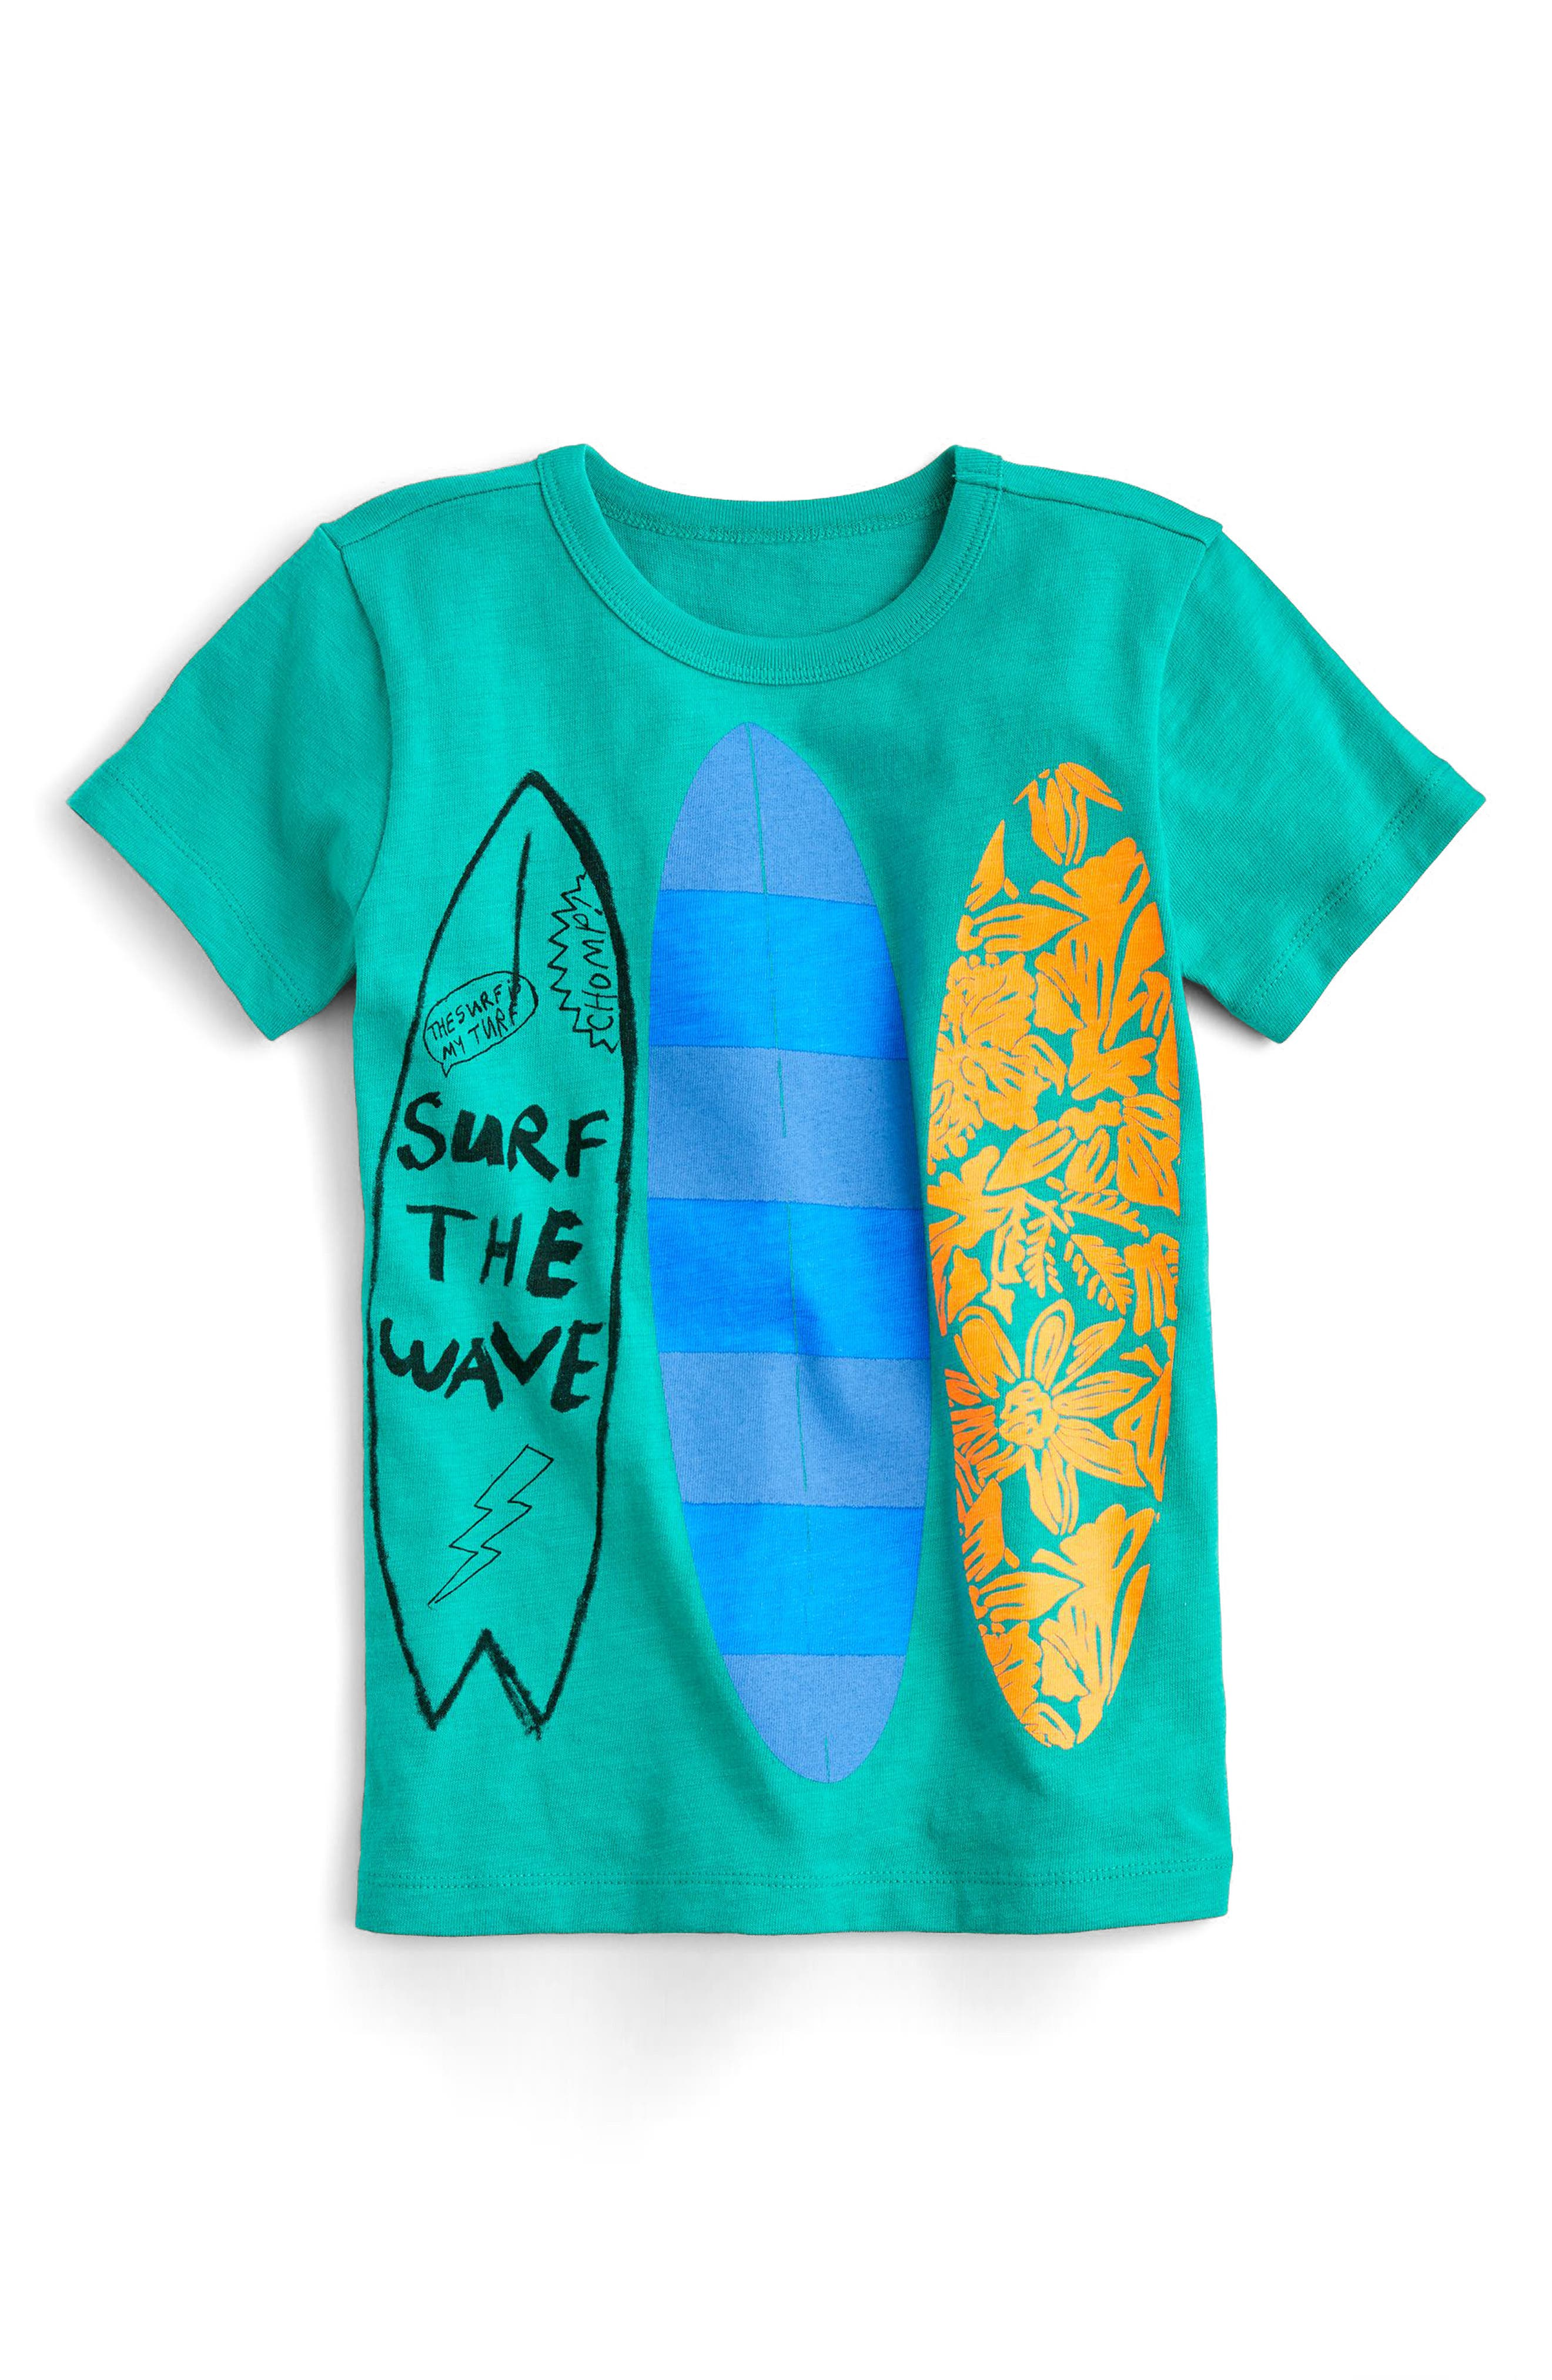 crewcuts by J.Crew Surf the Wave Graphic T-Shirt (Toddler Boys, Little Boys & Big Boys)